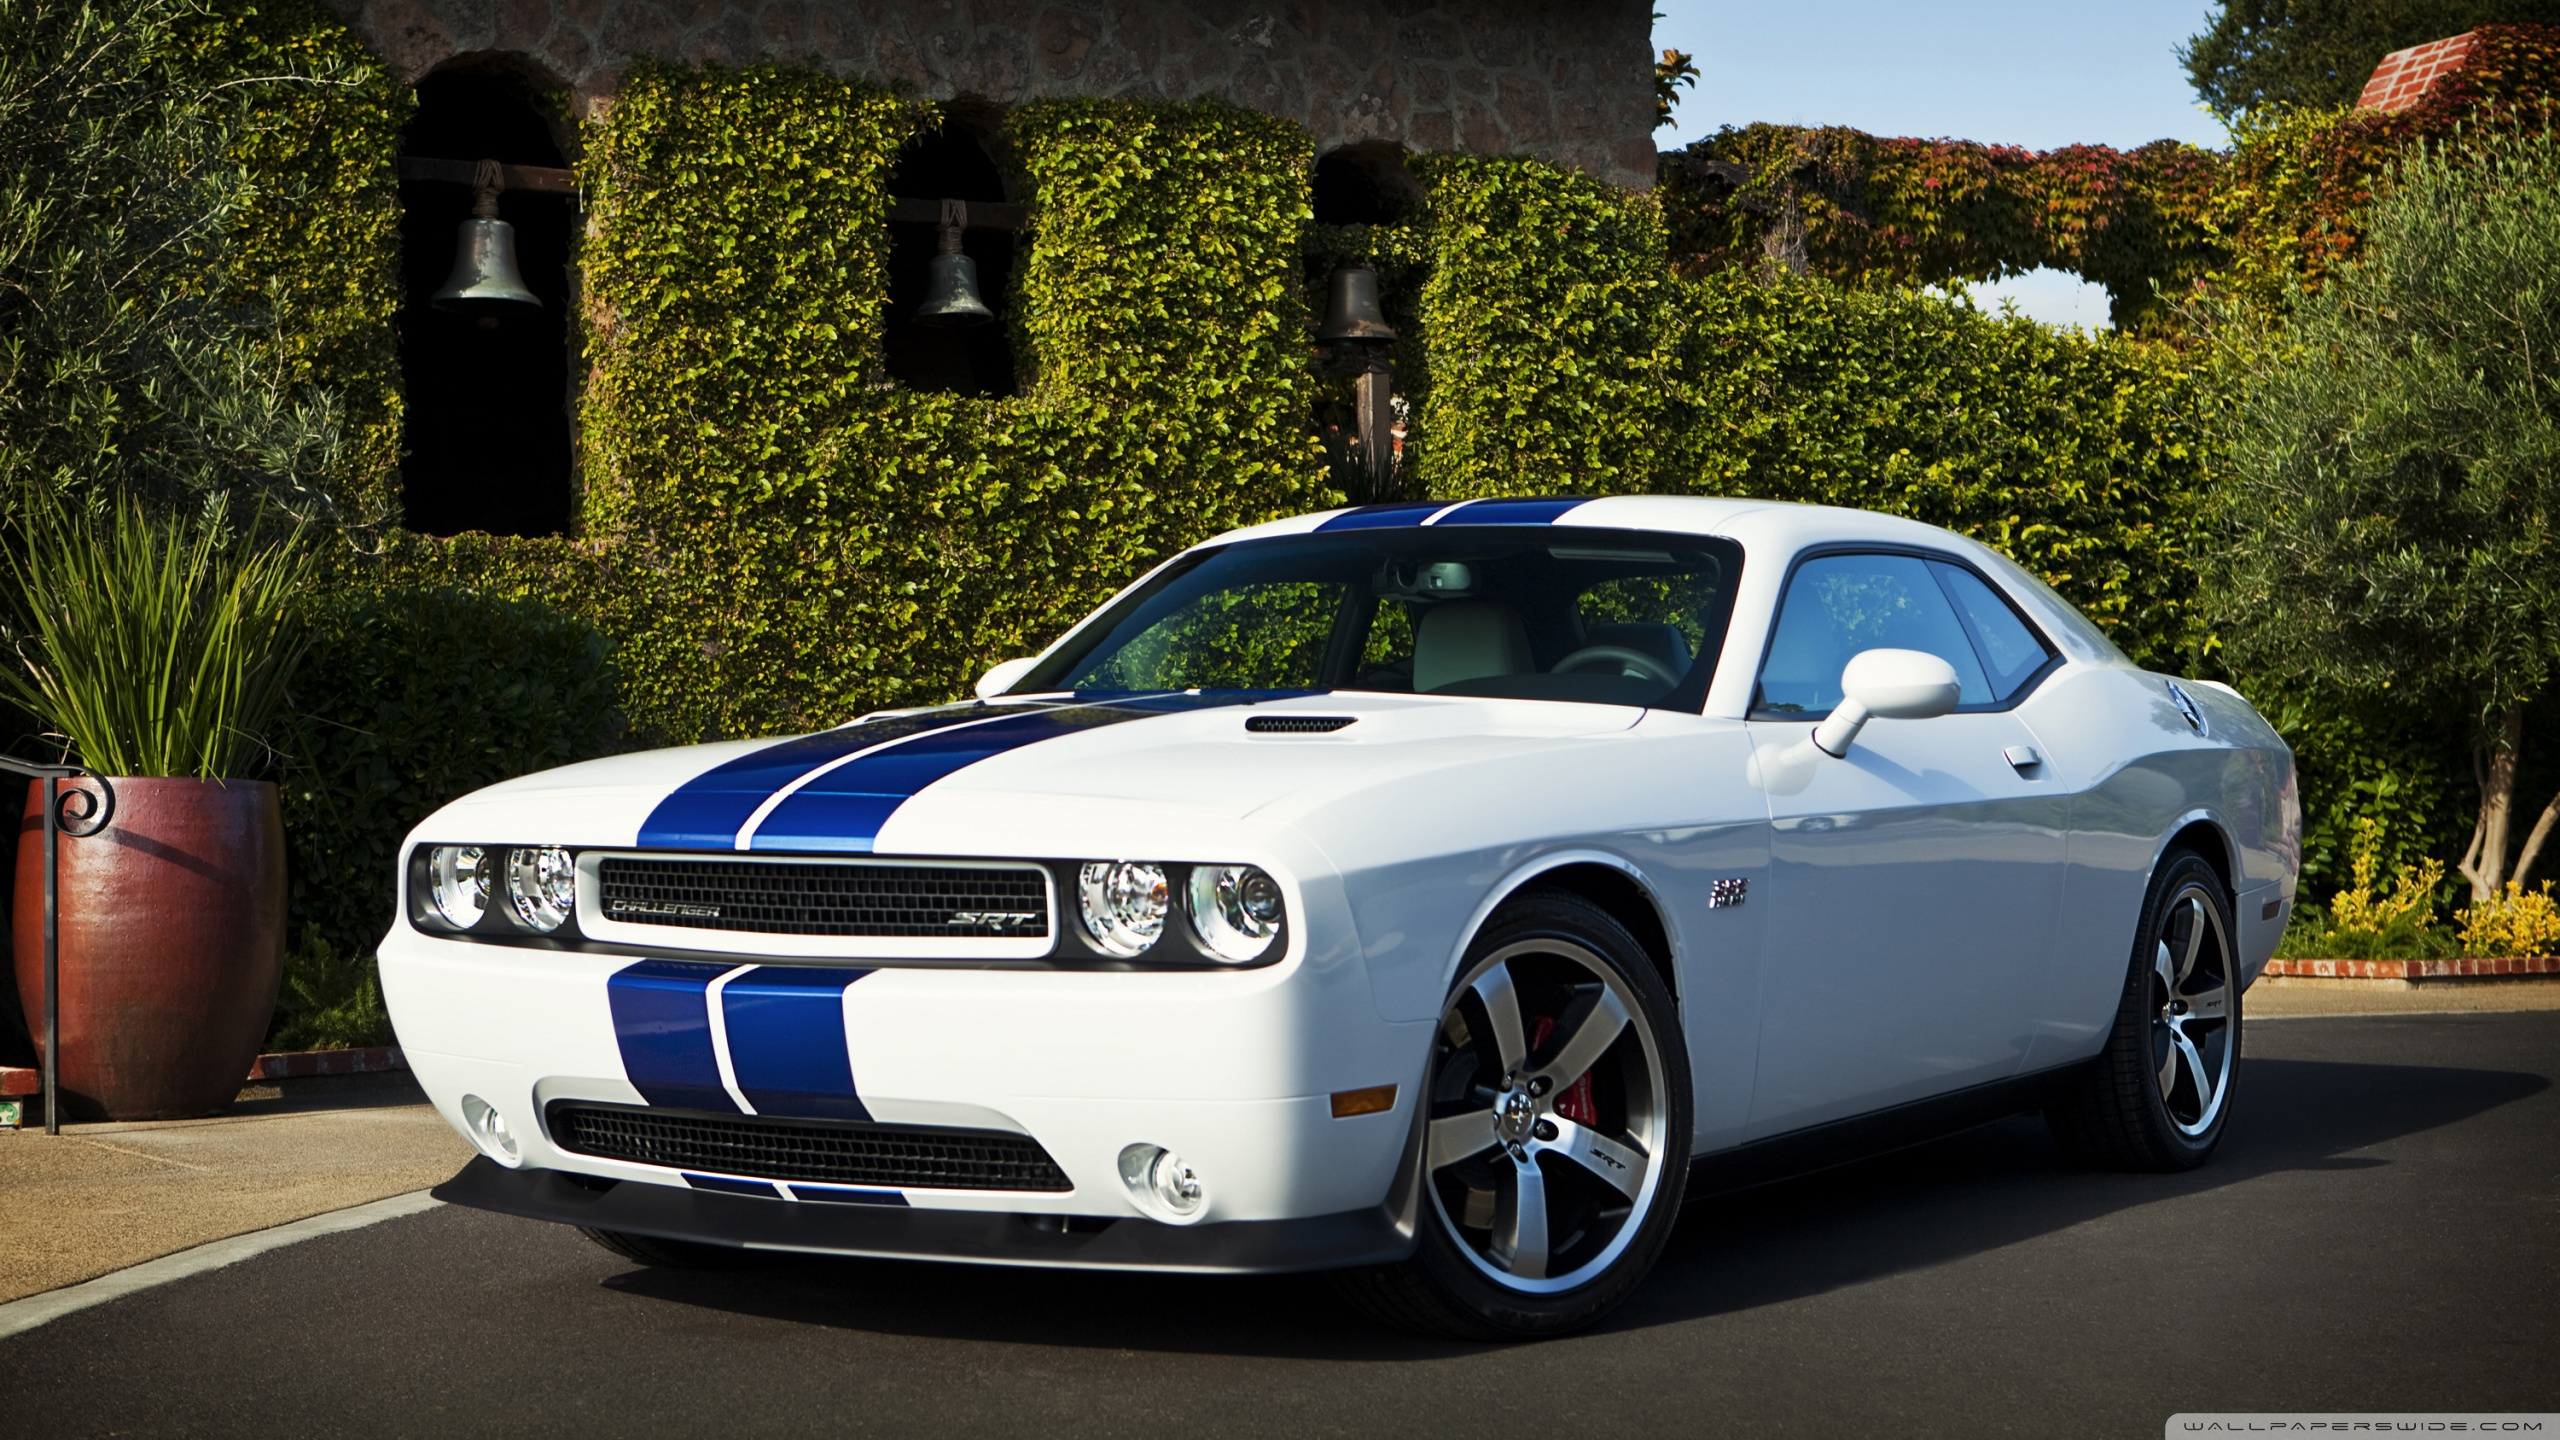 Challenger Hd Wallpaper Dodge Challenger Srt8 Blue Stripes 4k Hd Desktop Wallpaper For